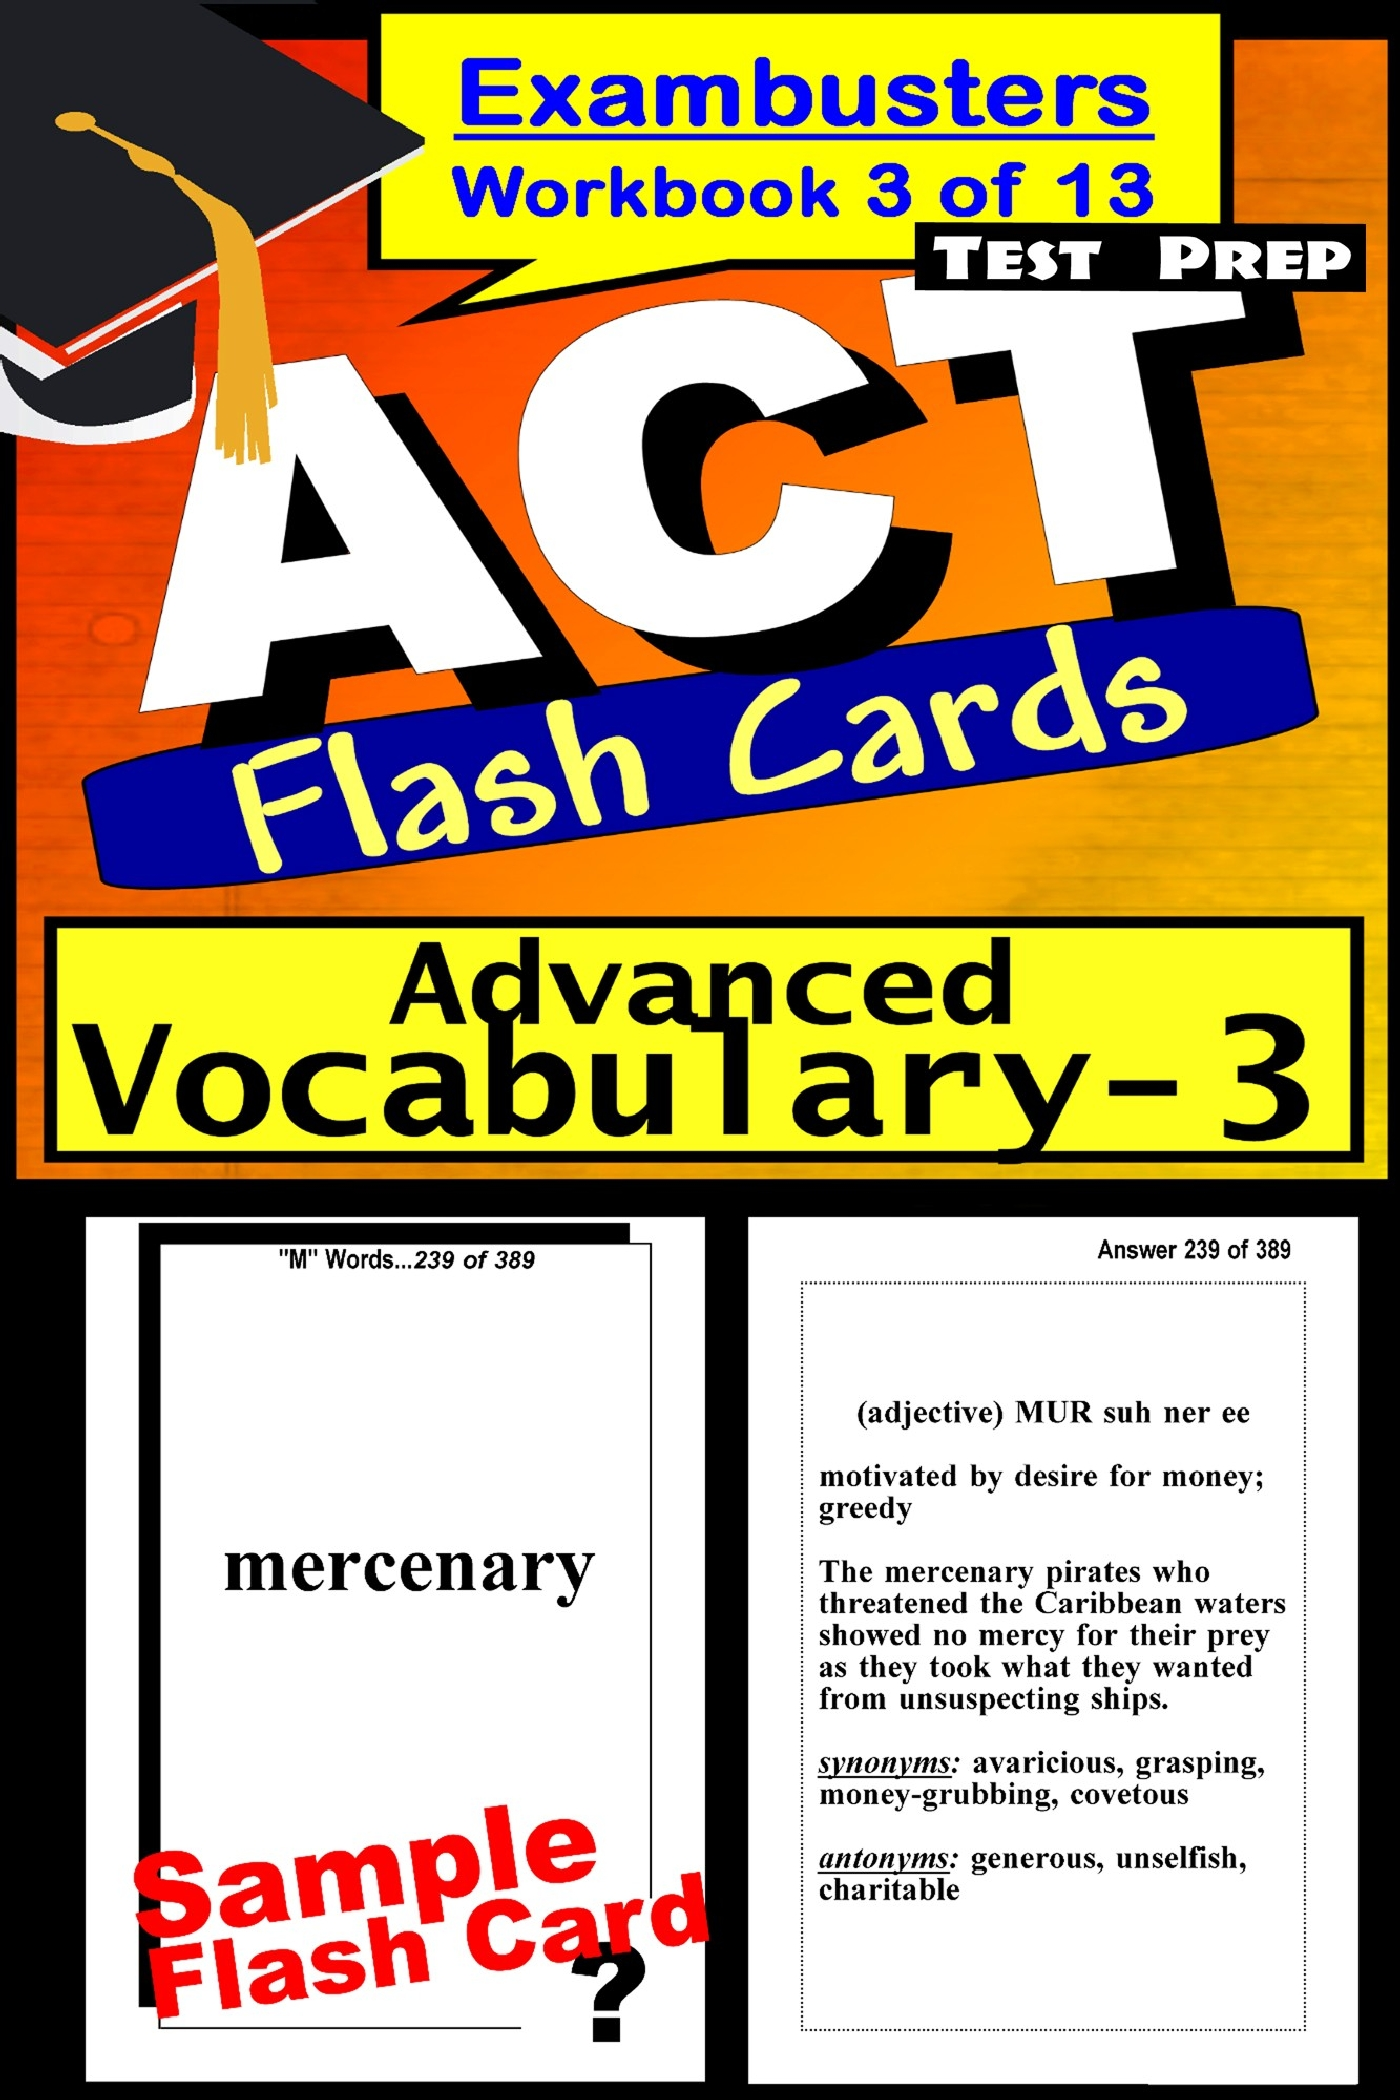 ACT Test Prep Advanced Vocabulary Review--Exambusters Flash Cards--Workbook 3 of 13: ACT Exam Study Guide